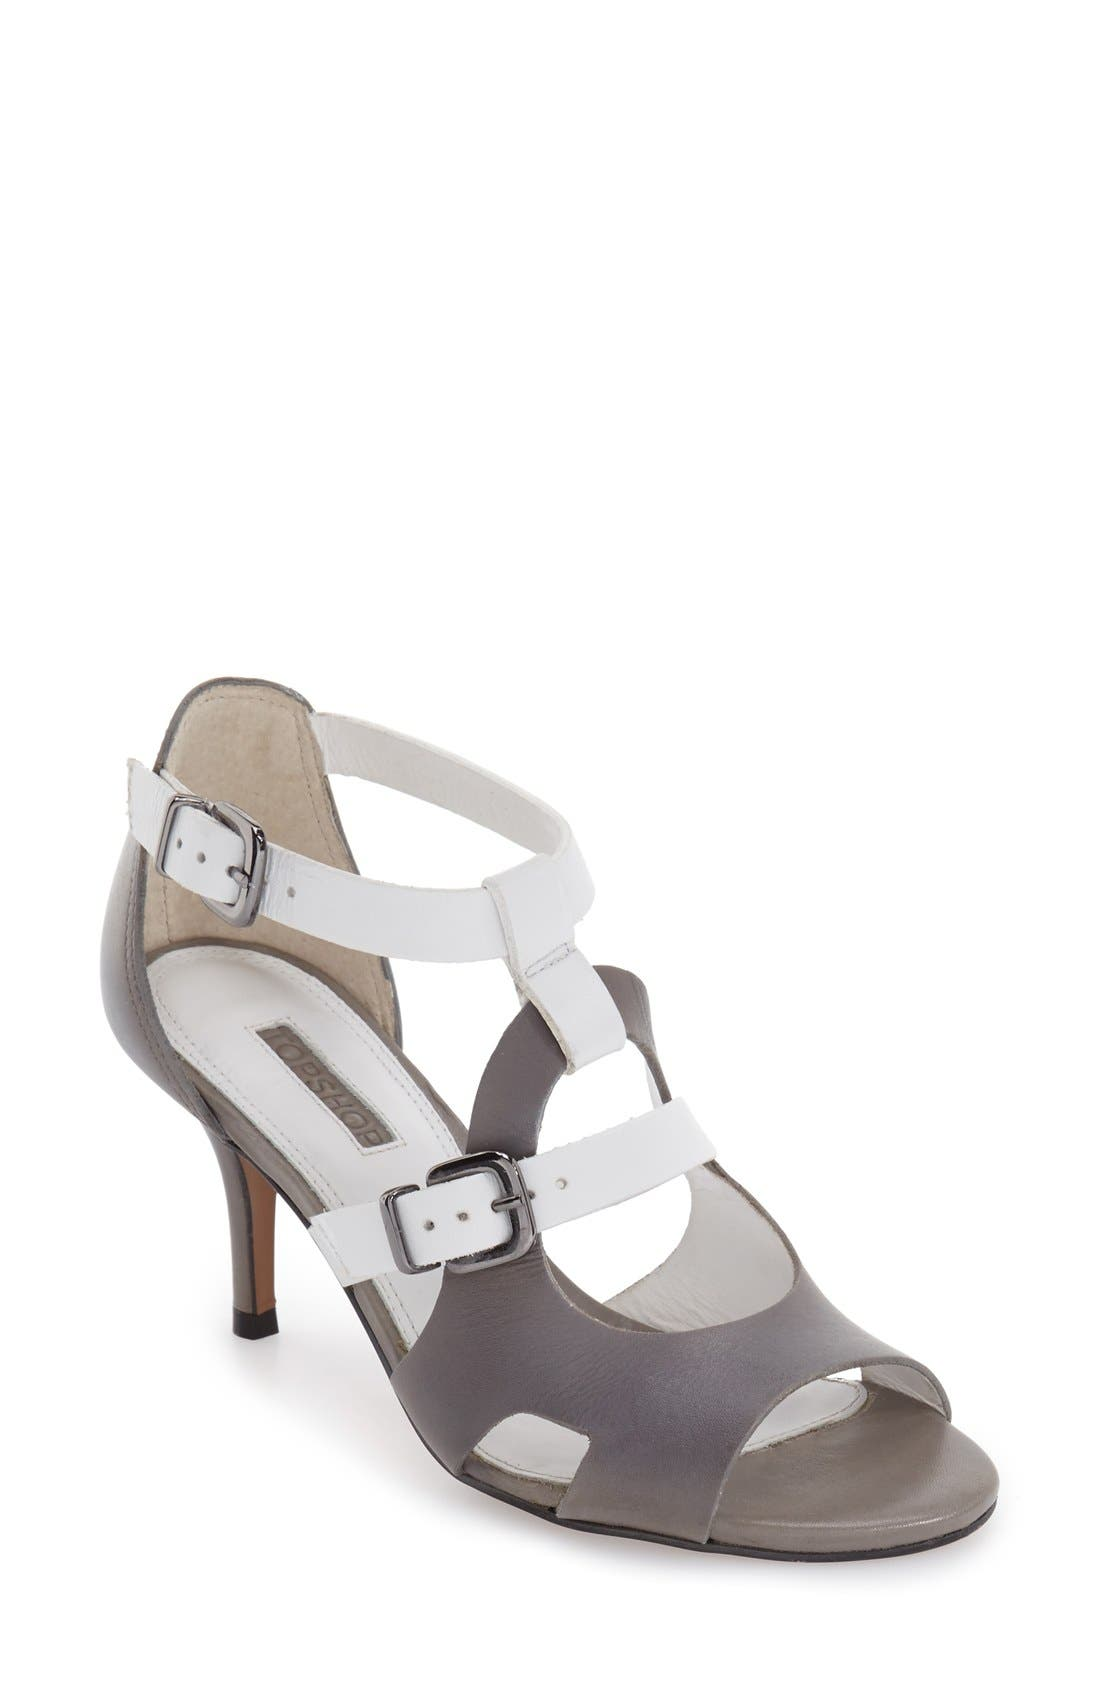 Alternate Image 1 Selected - Topshop 'Needle' Cutout Buckle Sandal (Women)